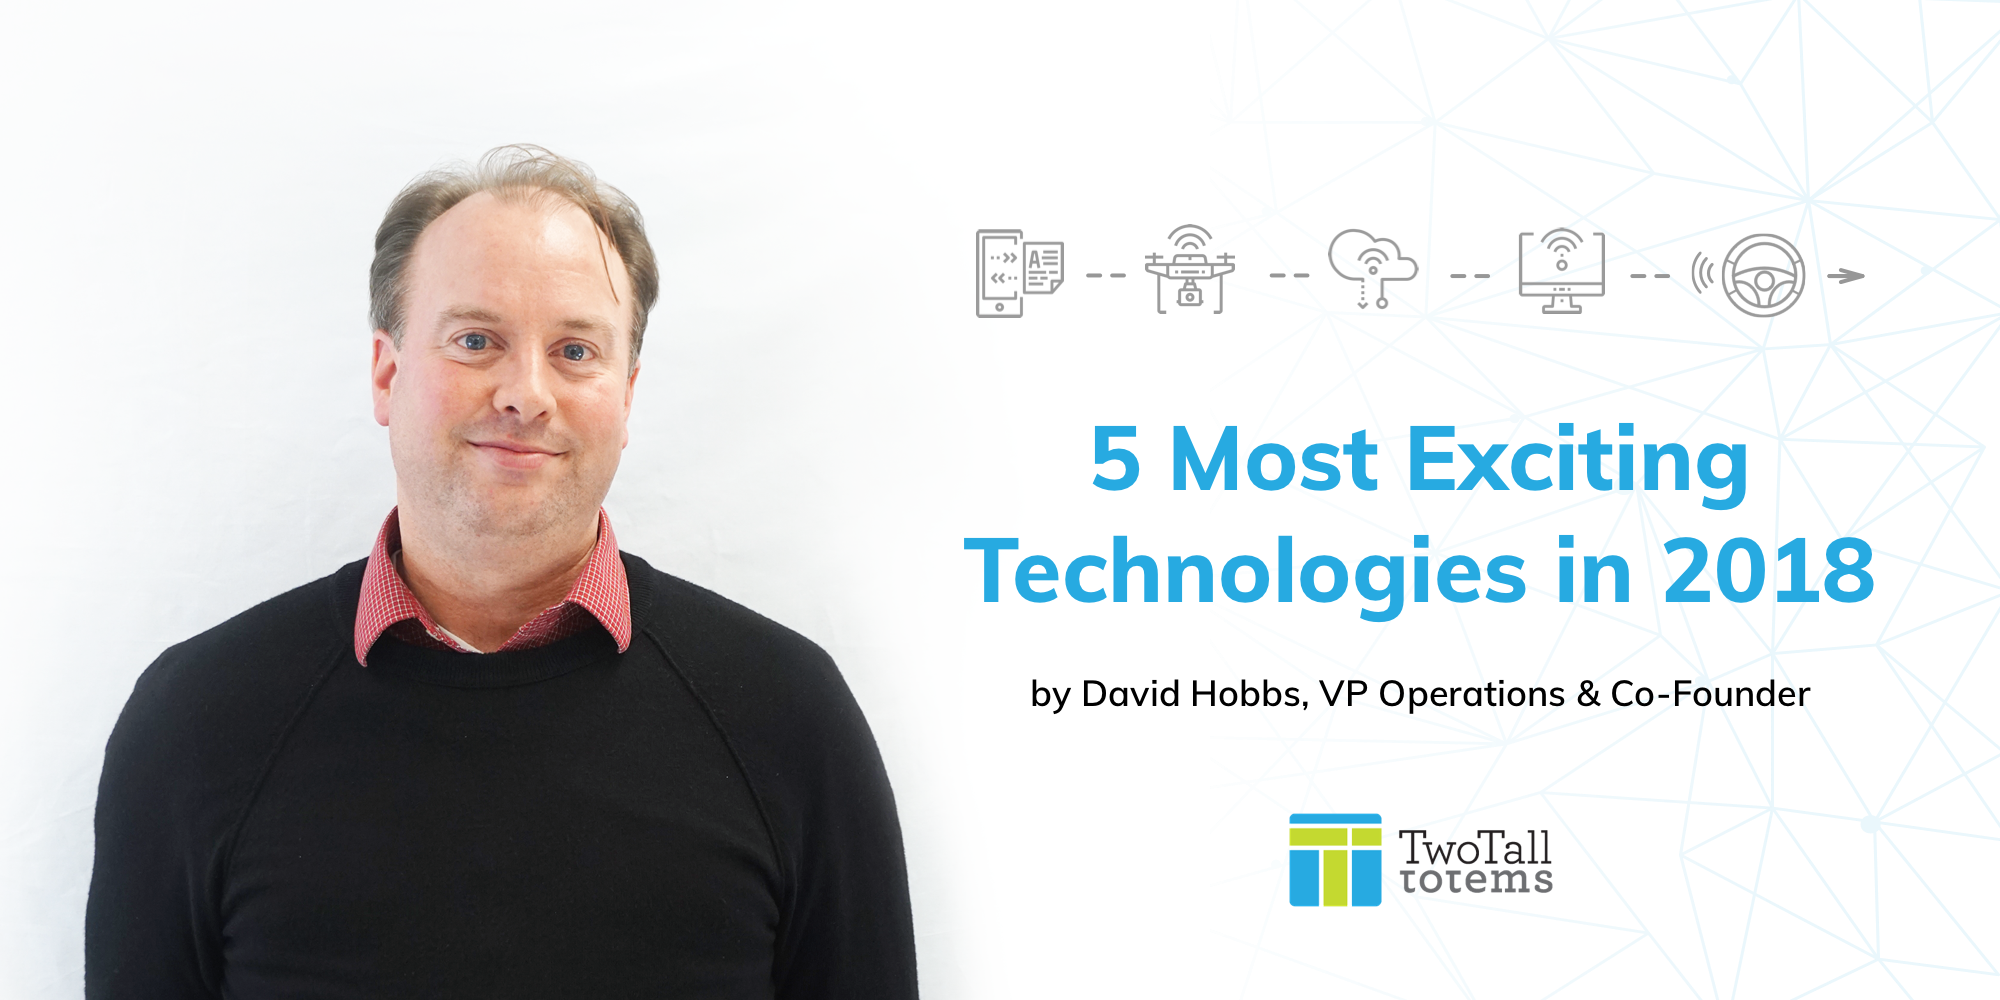 5 Exciting Technologies in 2018